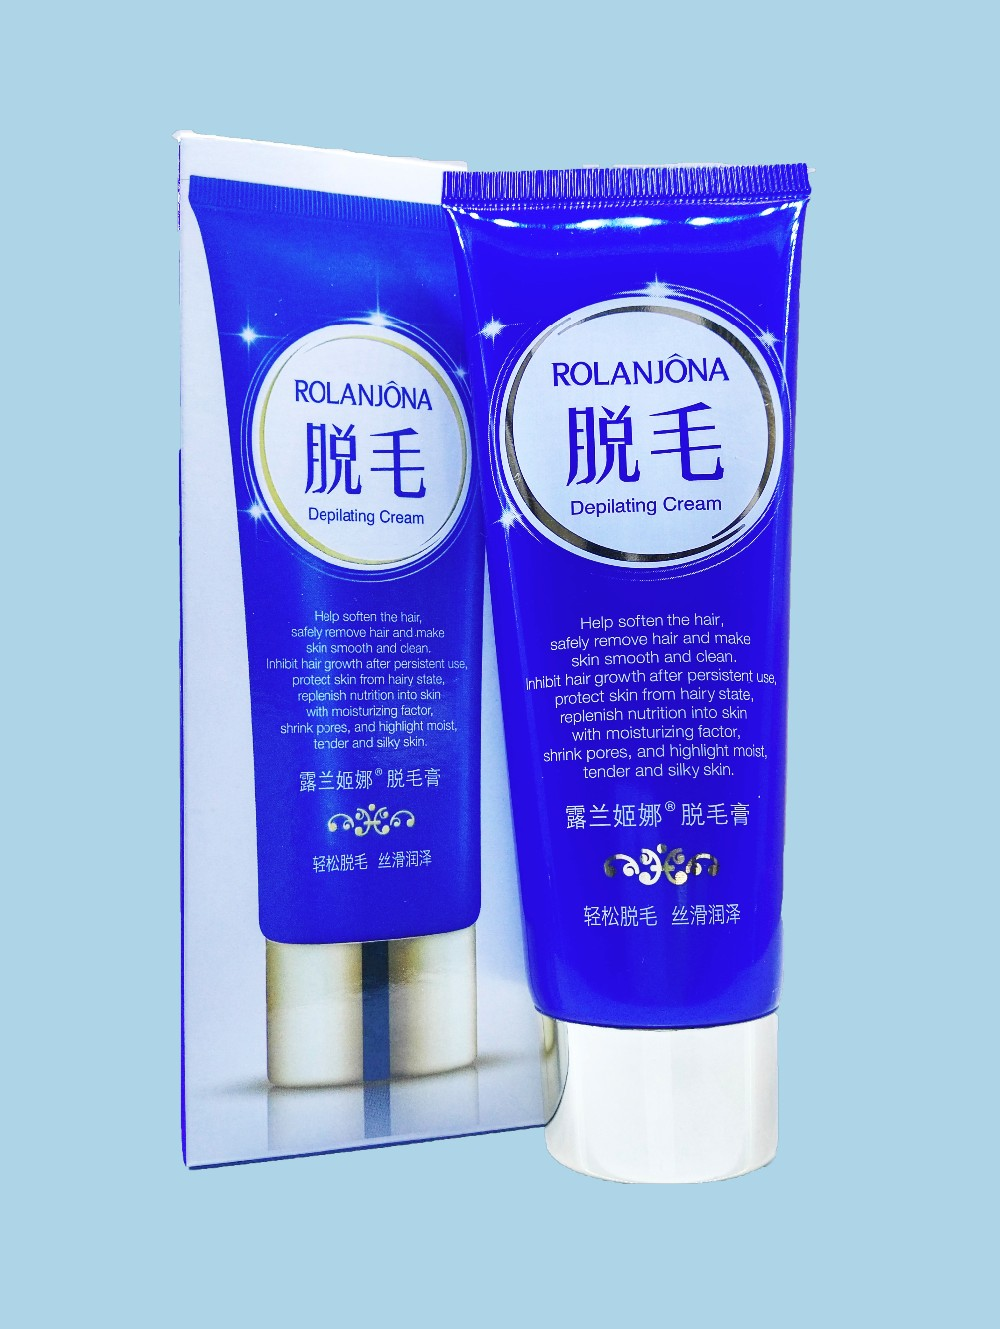 Rolanjona body hair removal depilatory cream permanent for women and men